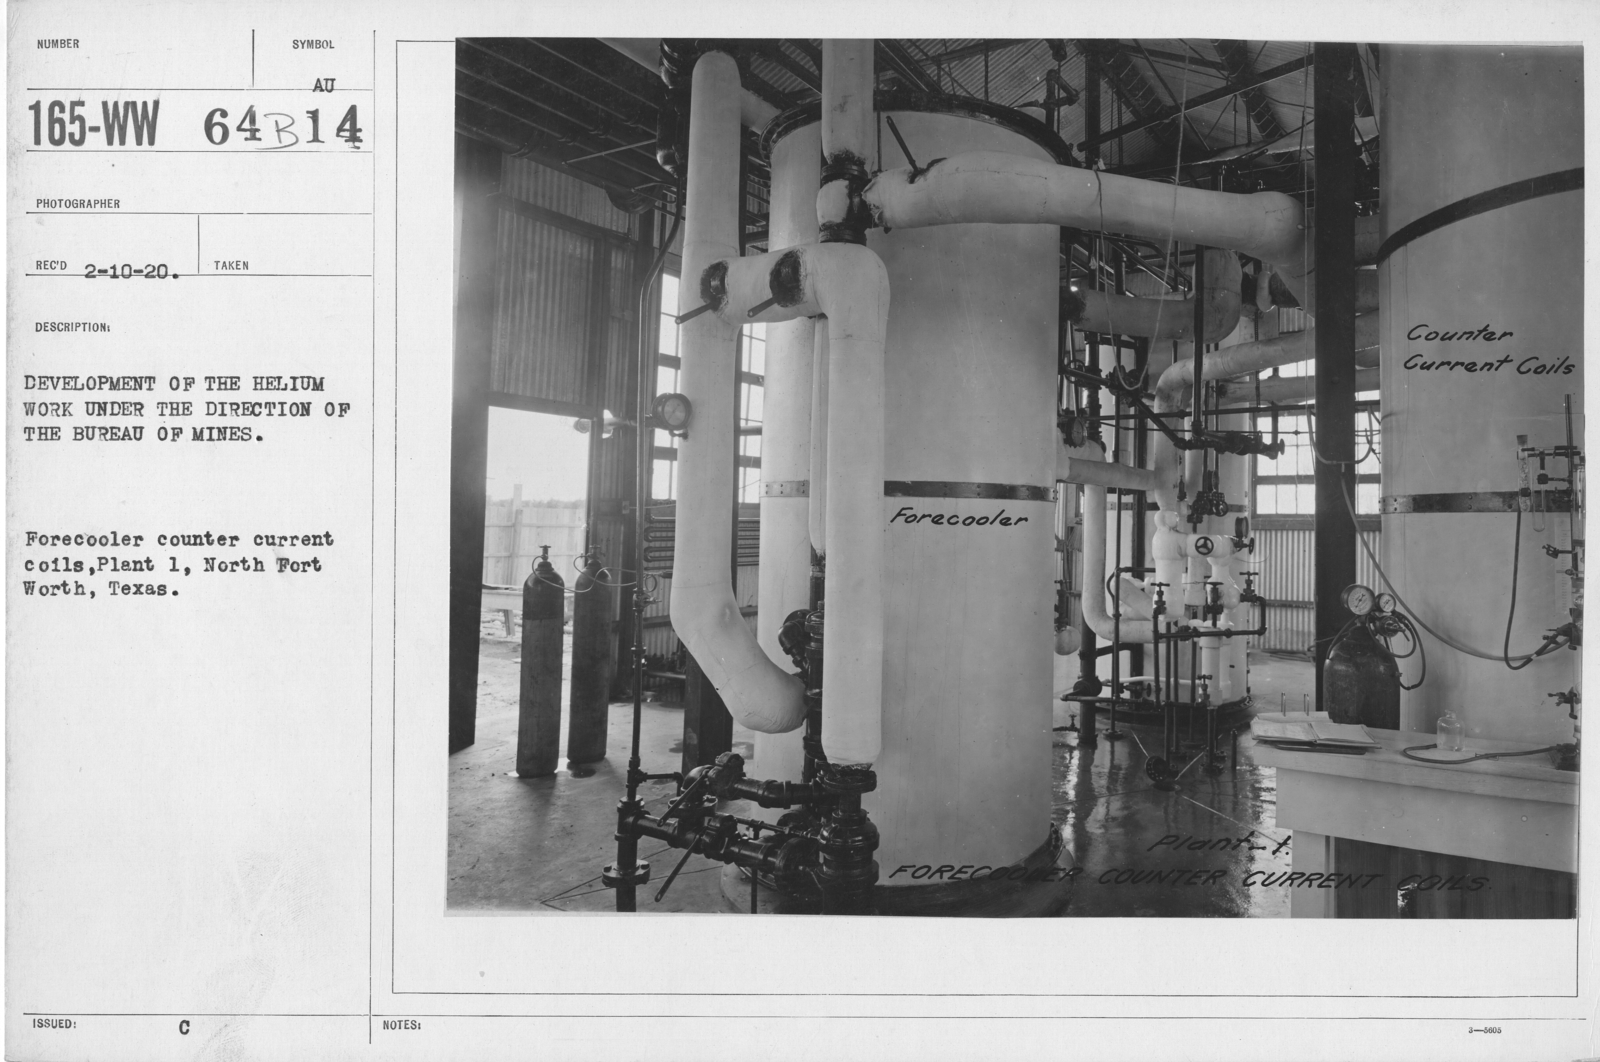 Balloons - Helium Plants - Development of the helium work under the direction of the Bureau of Mines. Forecooler counter current coils, Plant 1, North Fort Worth, Texas